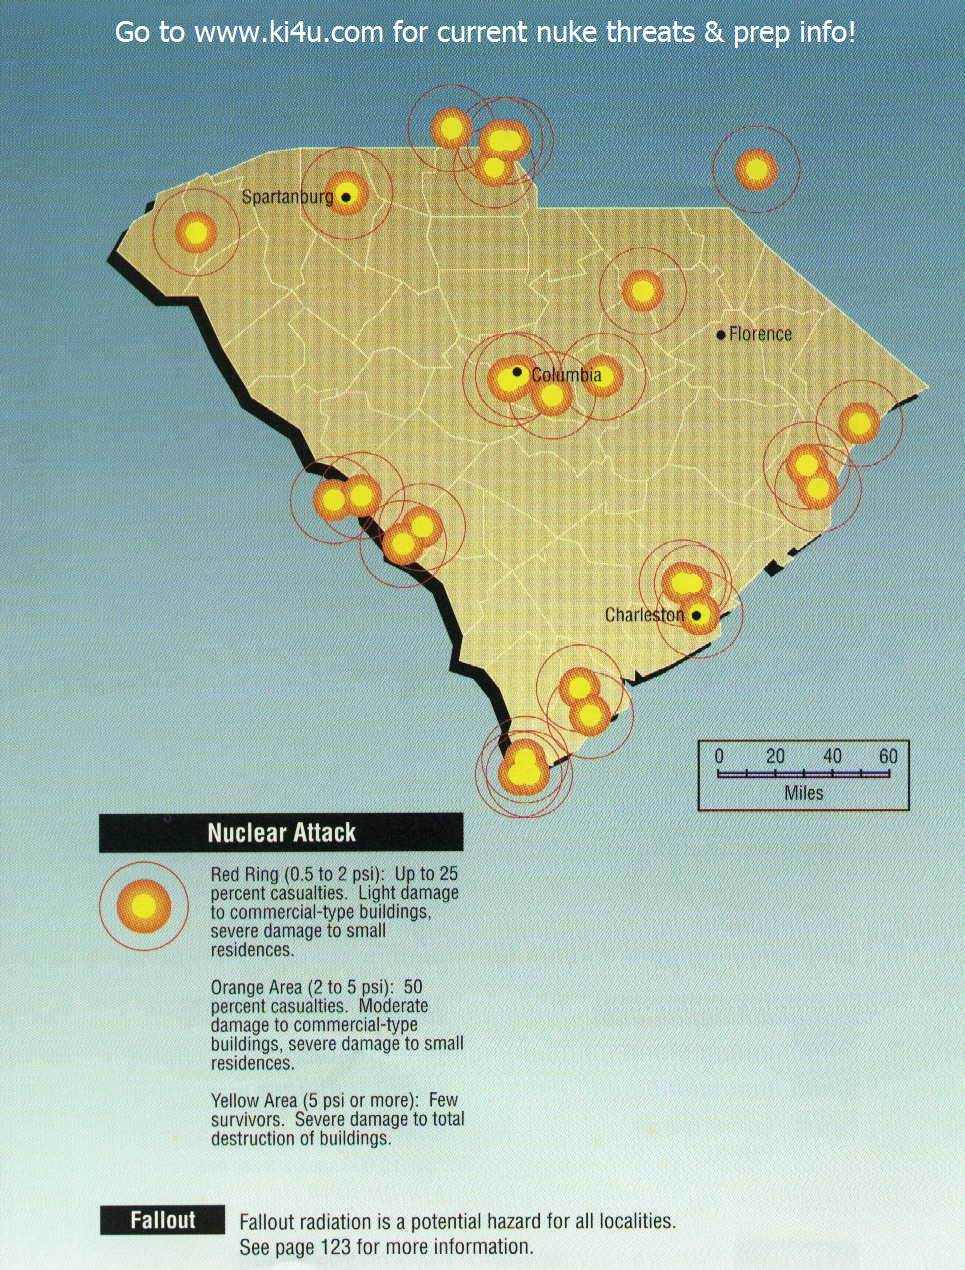 Nuclear war fallout shelter survival info for south carolina with south carolina targets publicscrutiny Choice Image